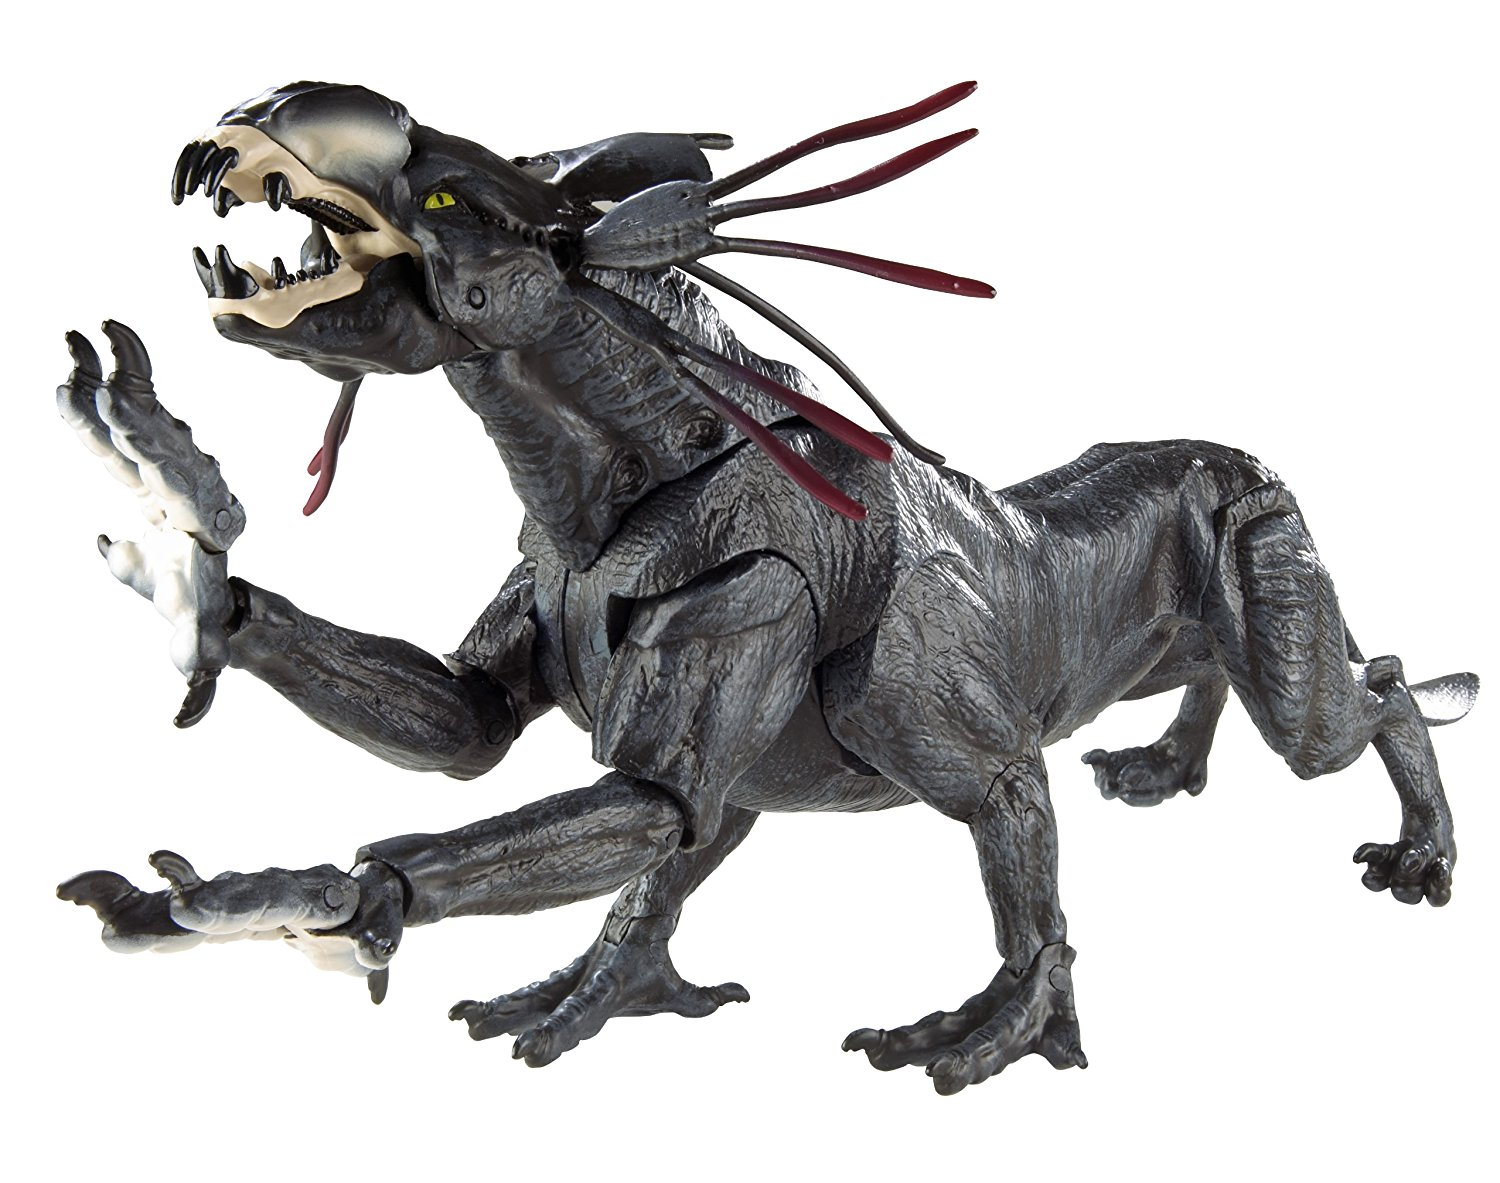 Avatar Na'vi Thanator Creature By Mattel by